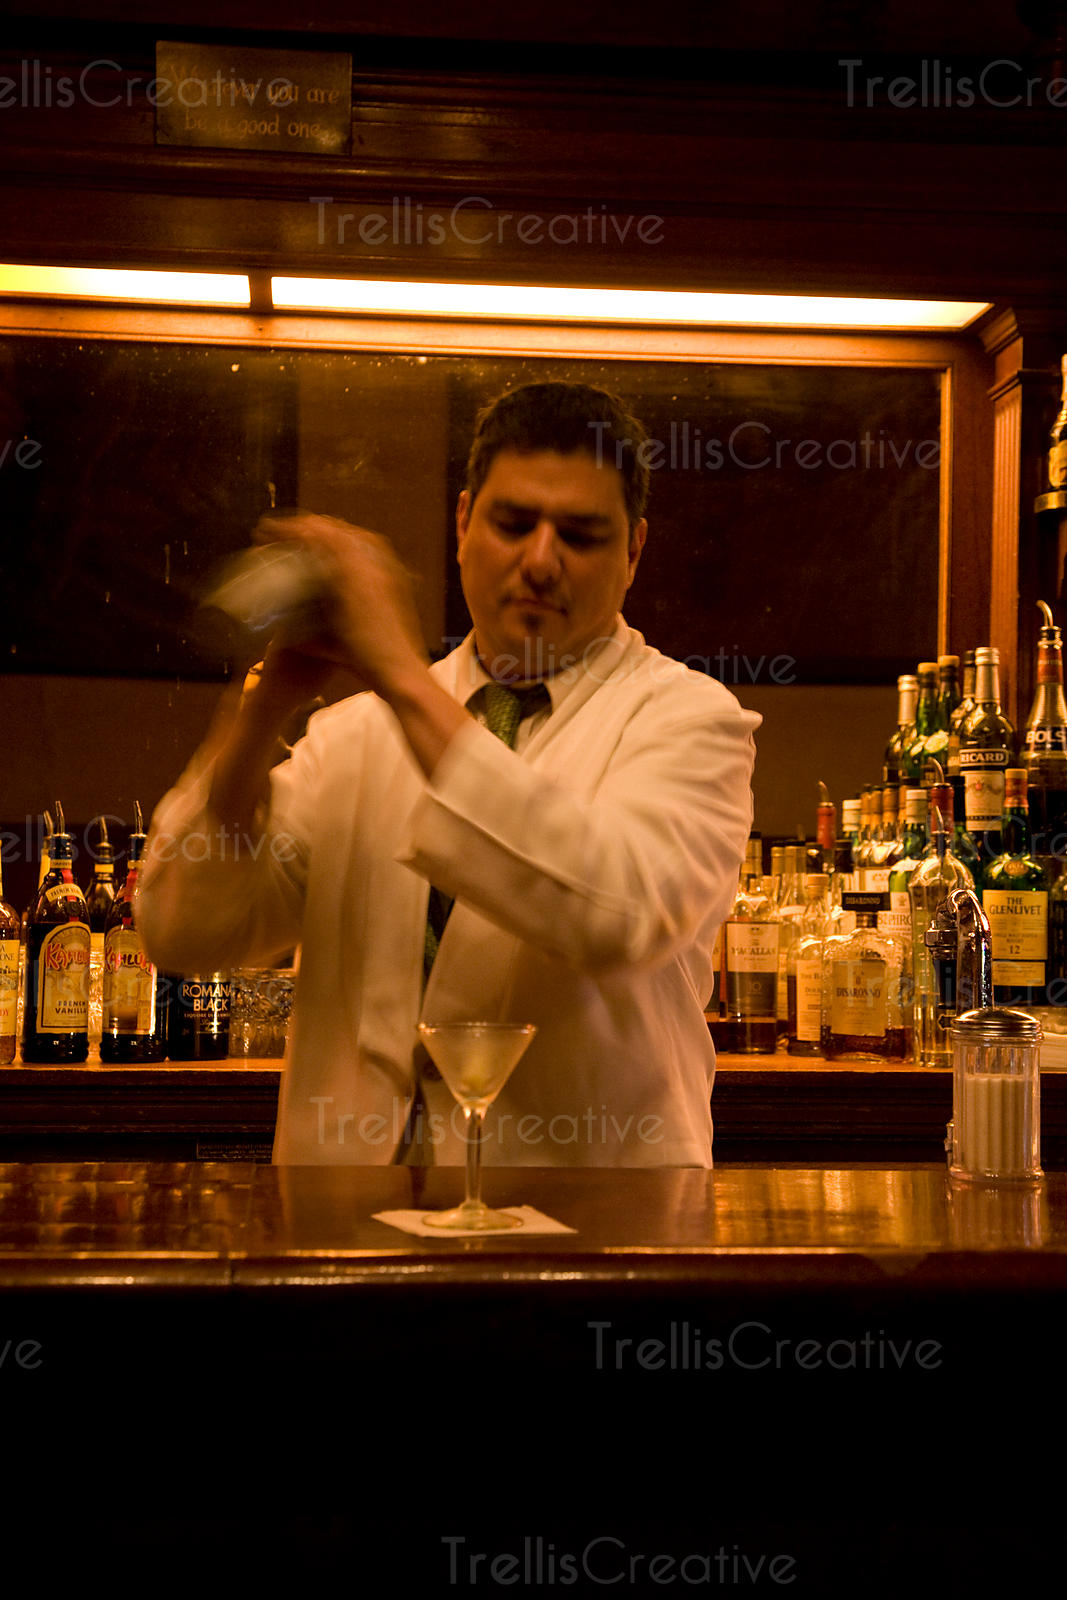 Bartender shakes a martini shaker before pouring cocktail